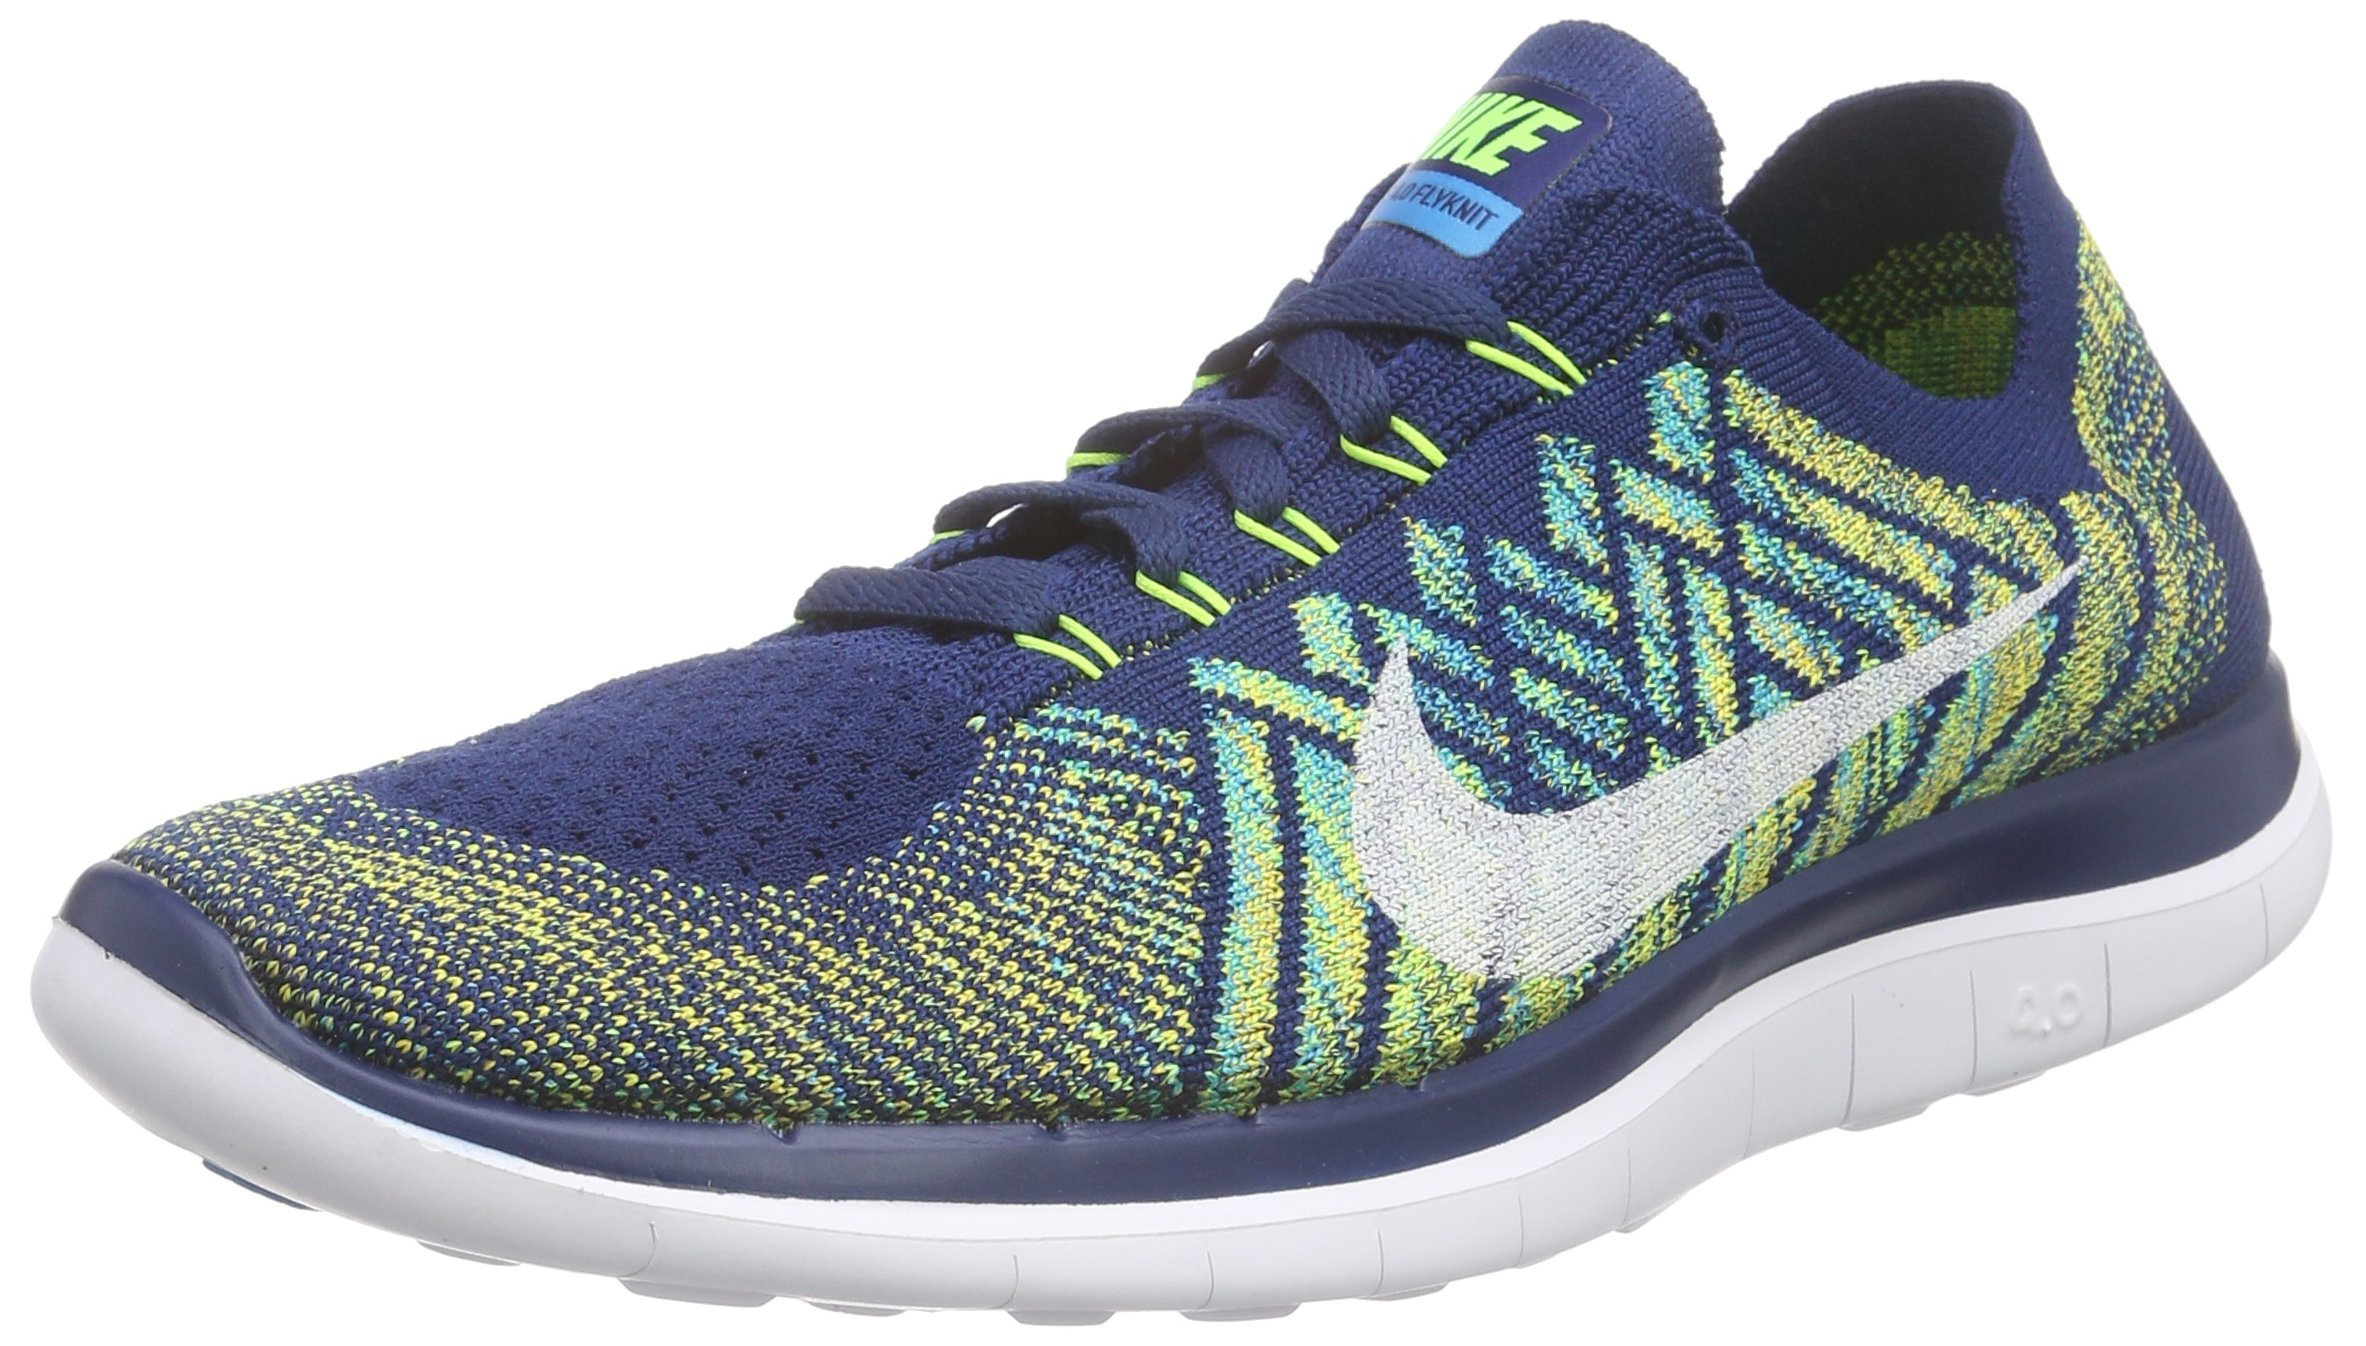 uk availability f680d f791b Galleon - Nike Free 4.0 Flyknit Men Round Toe Synthetic Running Shoe ,Brave  Blue, Black, Volt, White,10.5 D(M) US